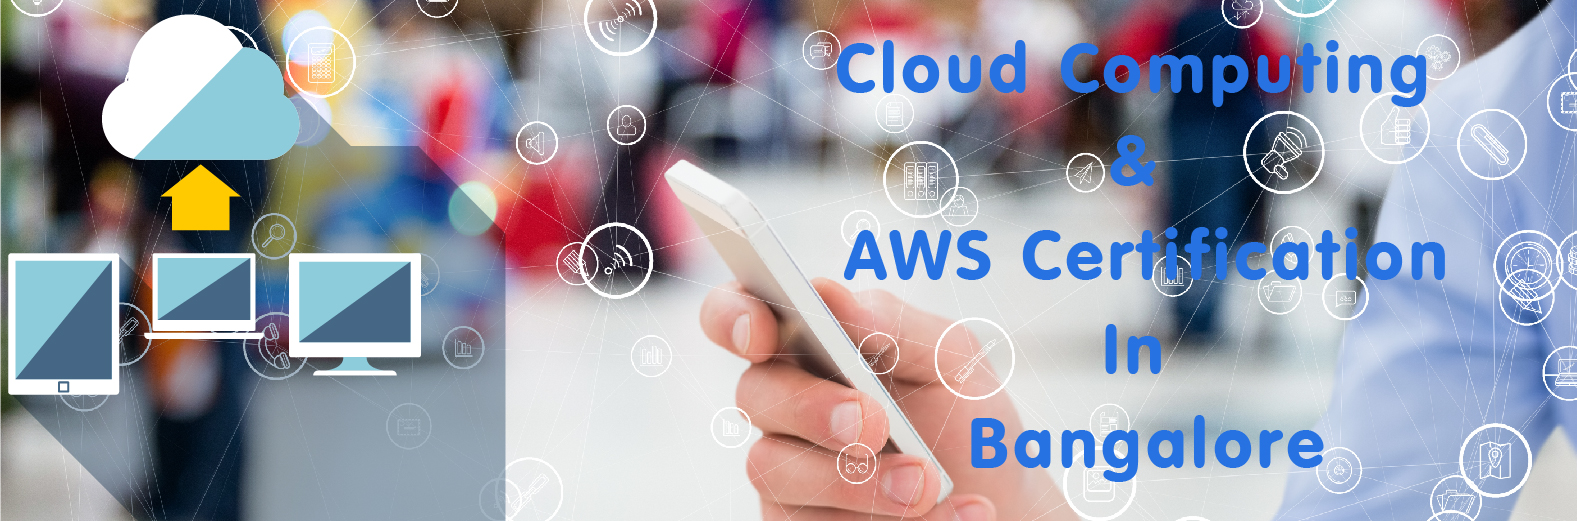 Cloud computing and AWS Certification in Bangalore